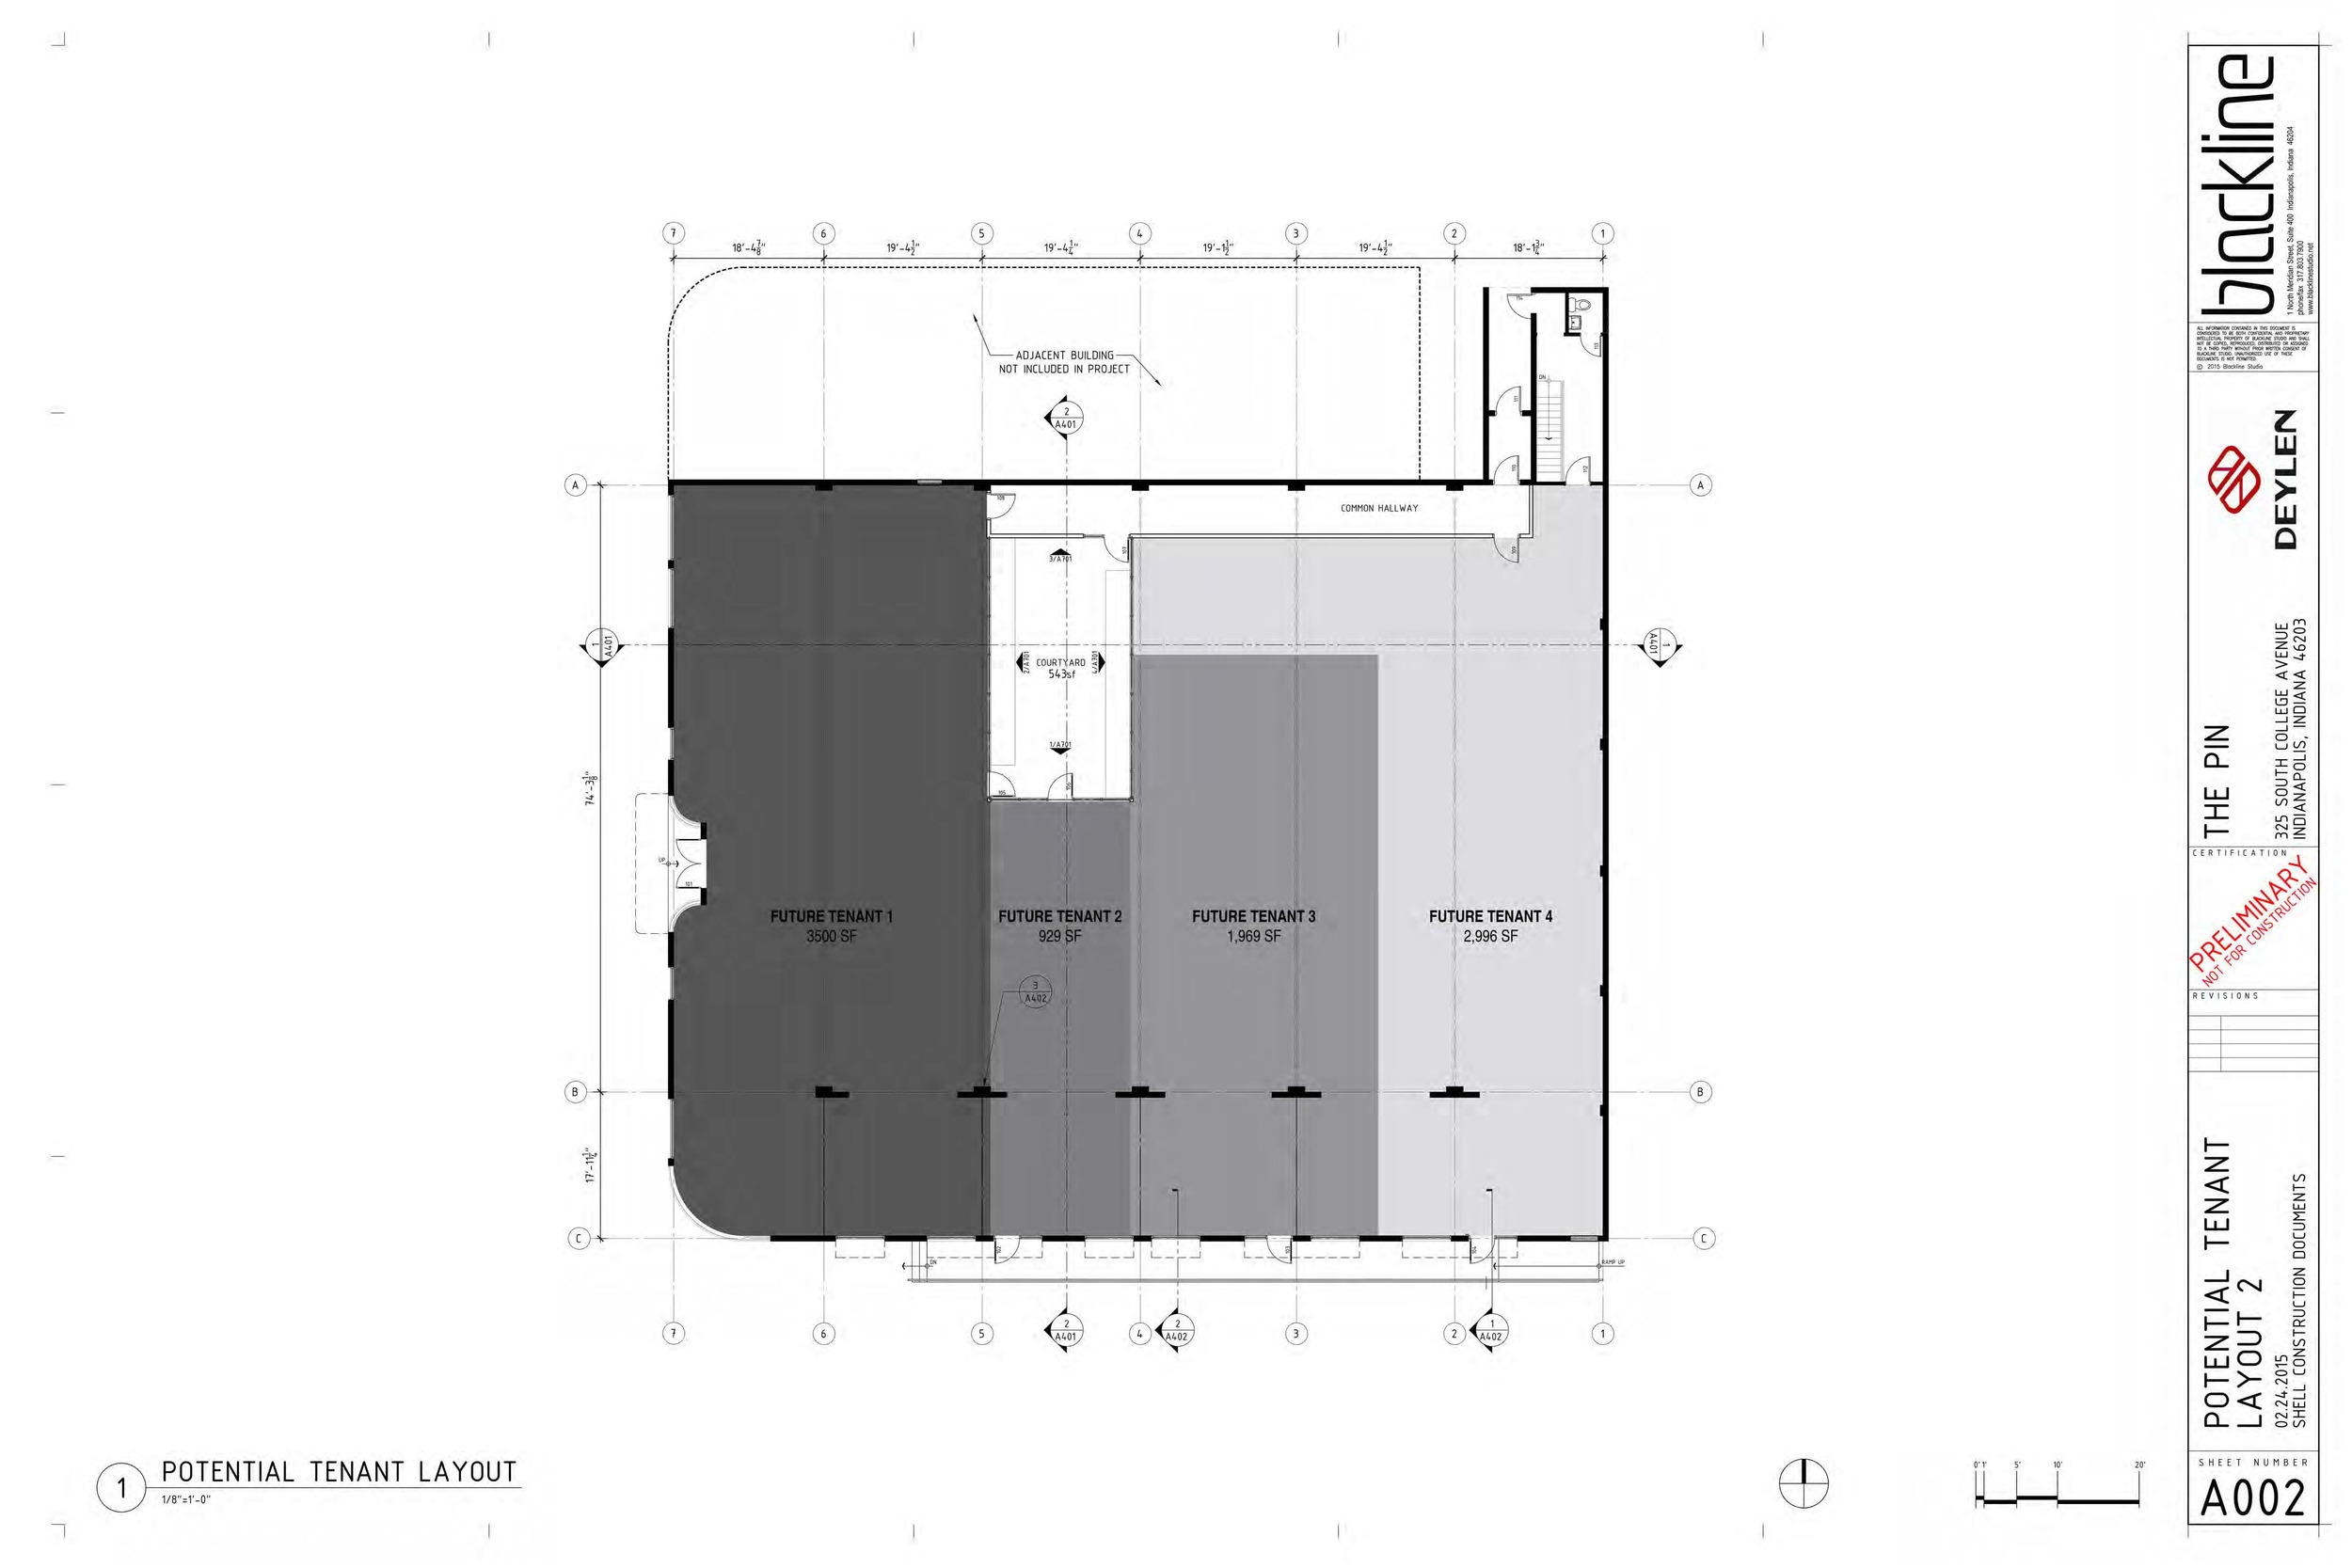 2015 04 14 - Tenant Options_Page_2.jpg